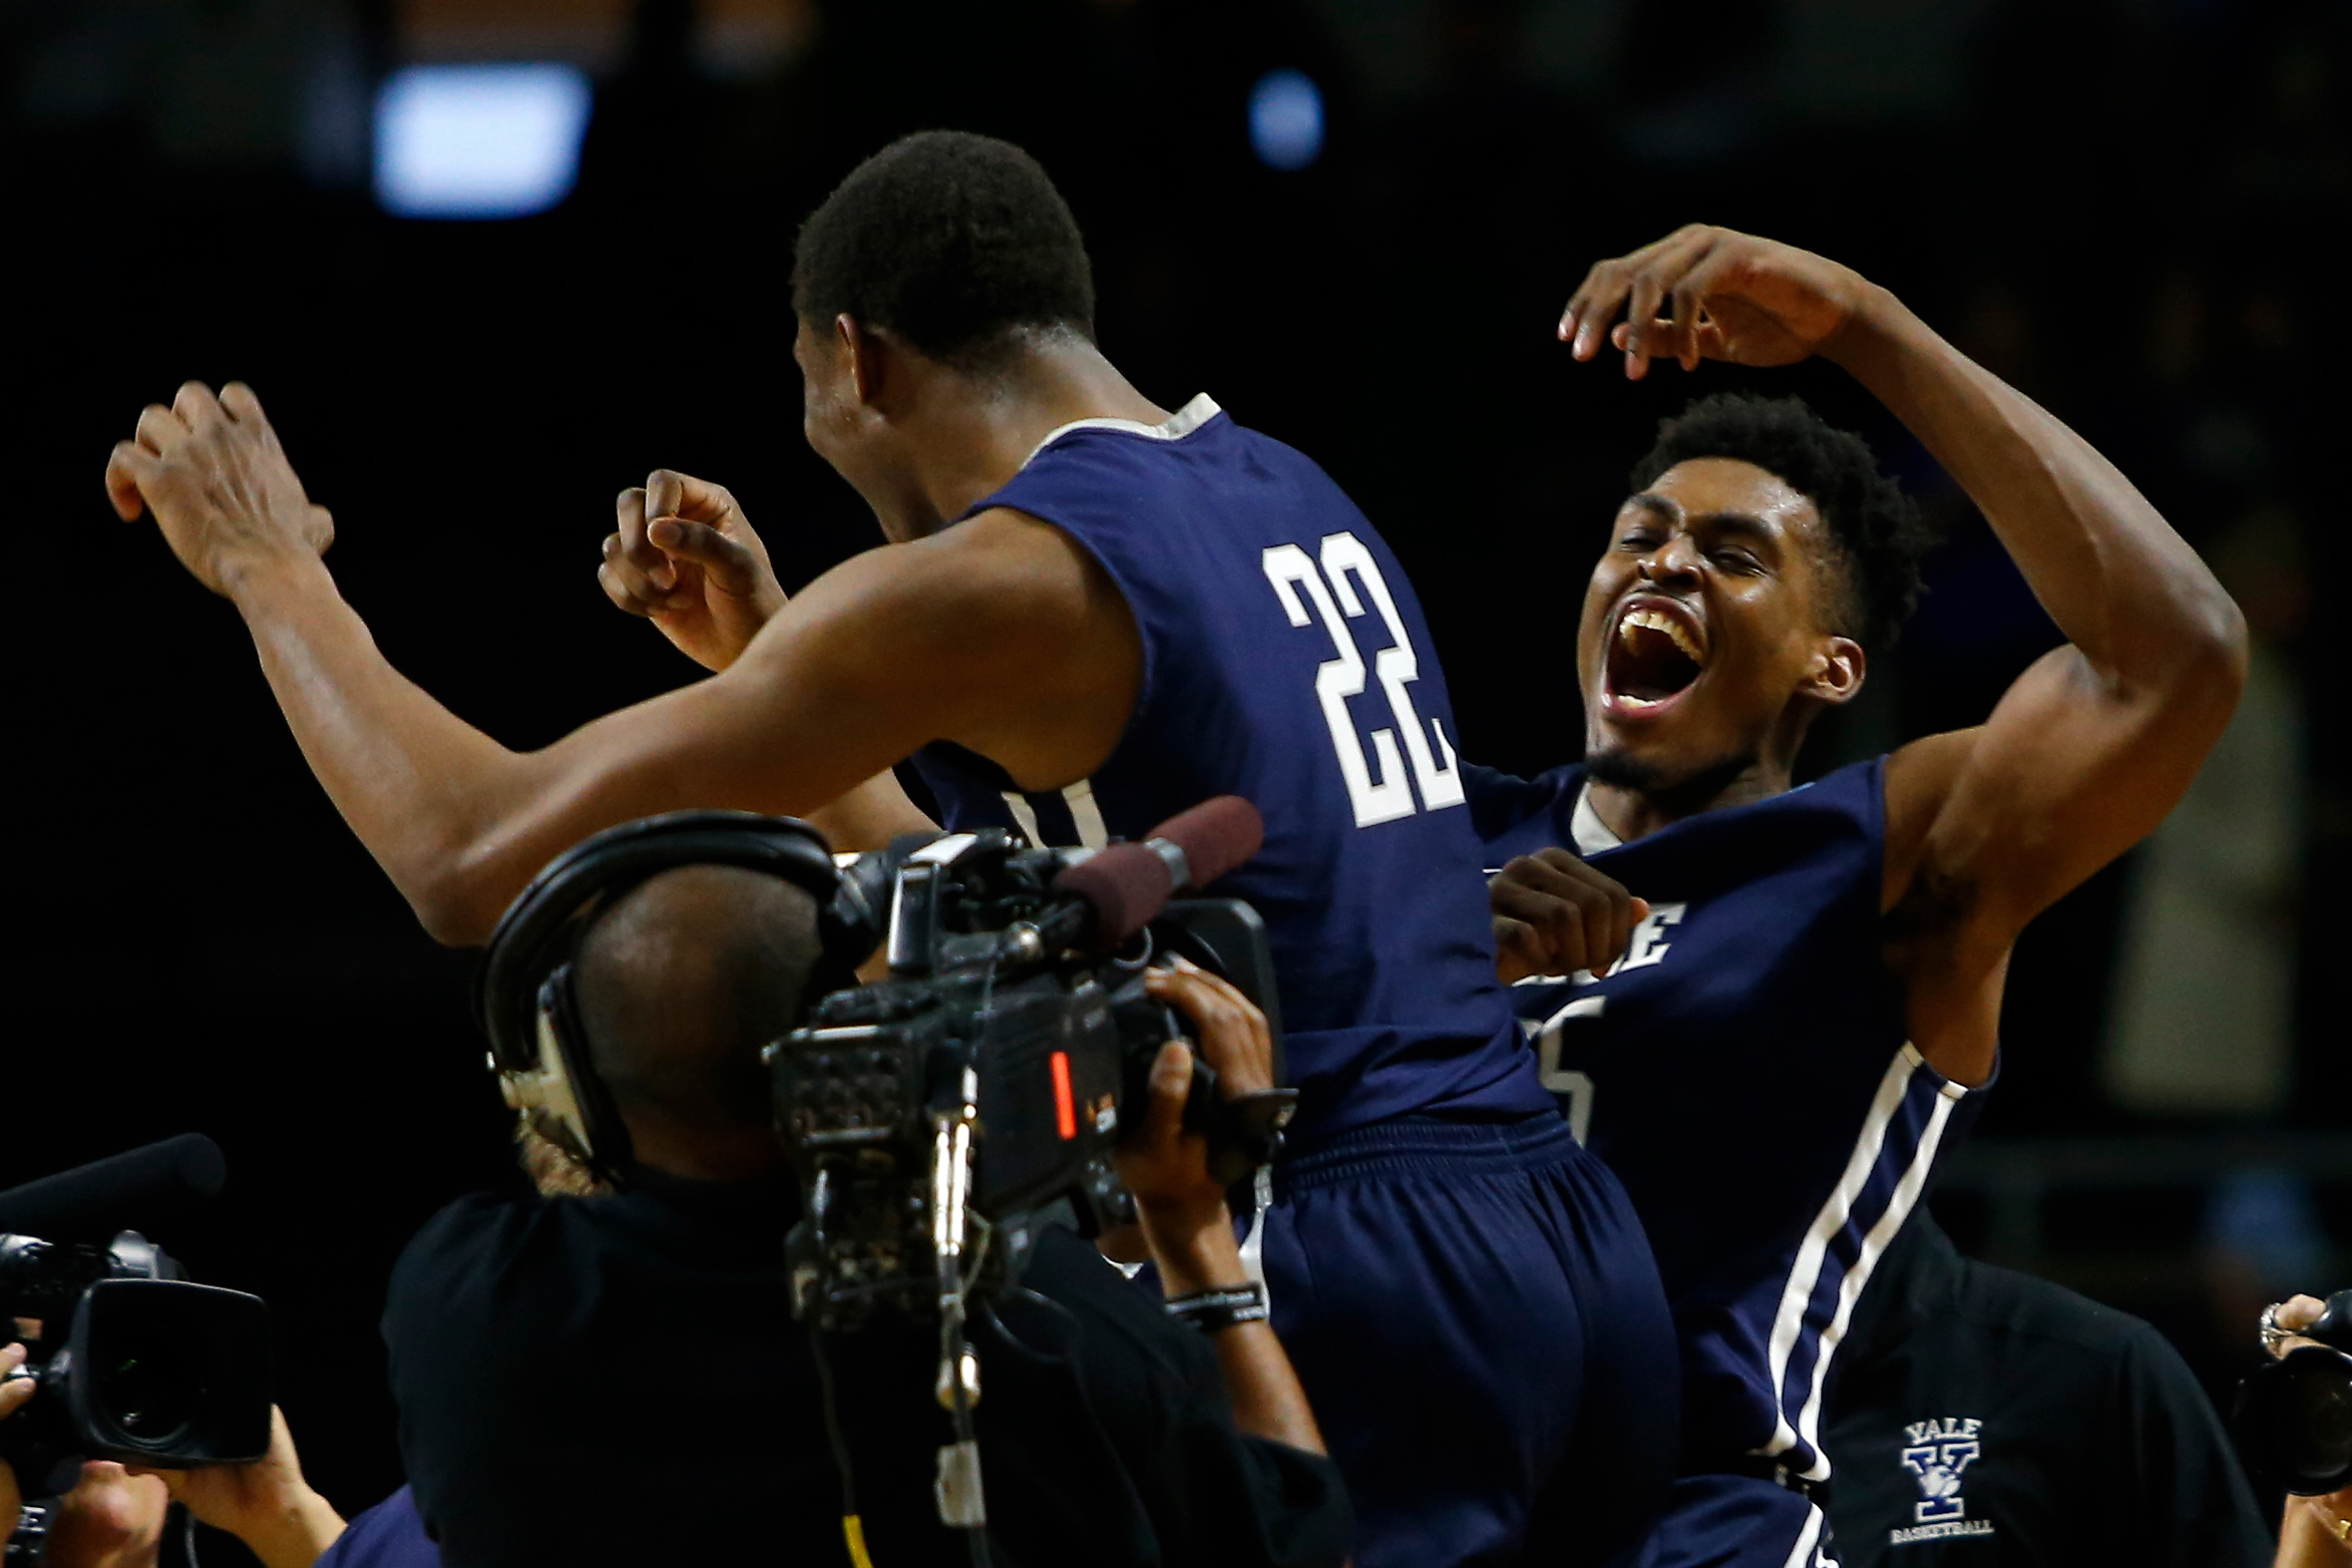 Mar 17, 2016; Providence, RI, USA; Yale Bulldogs forward Justin Sears (22) and Brandon Sherrod (35) celebrate their victory over Baylor during a first round game of the 2016 NCAA Tournament at Dunkin Donuts Center. Mandatory Credit: Winslow Townson-USA TODAY Sports